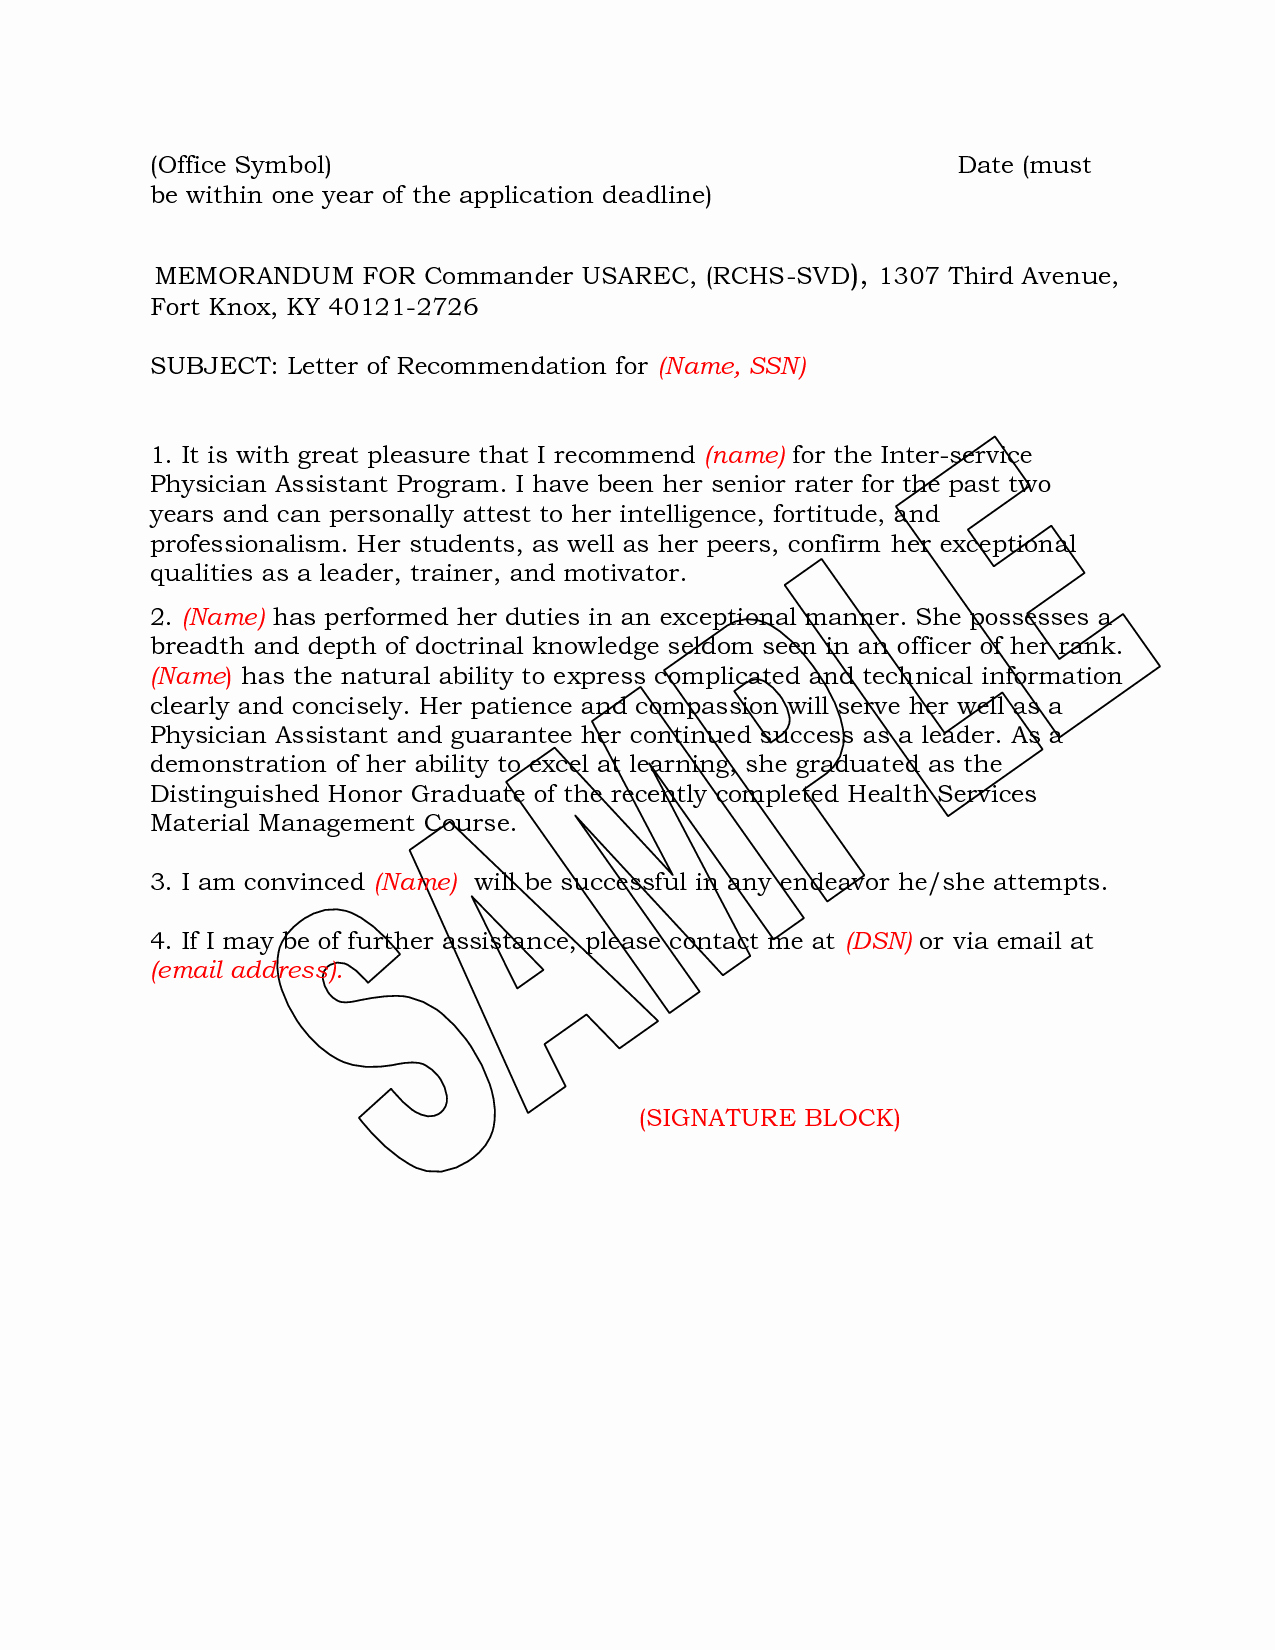 Military Letter Of Recommendation Template Best Of Army Letter Re Mendation